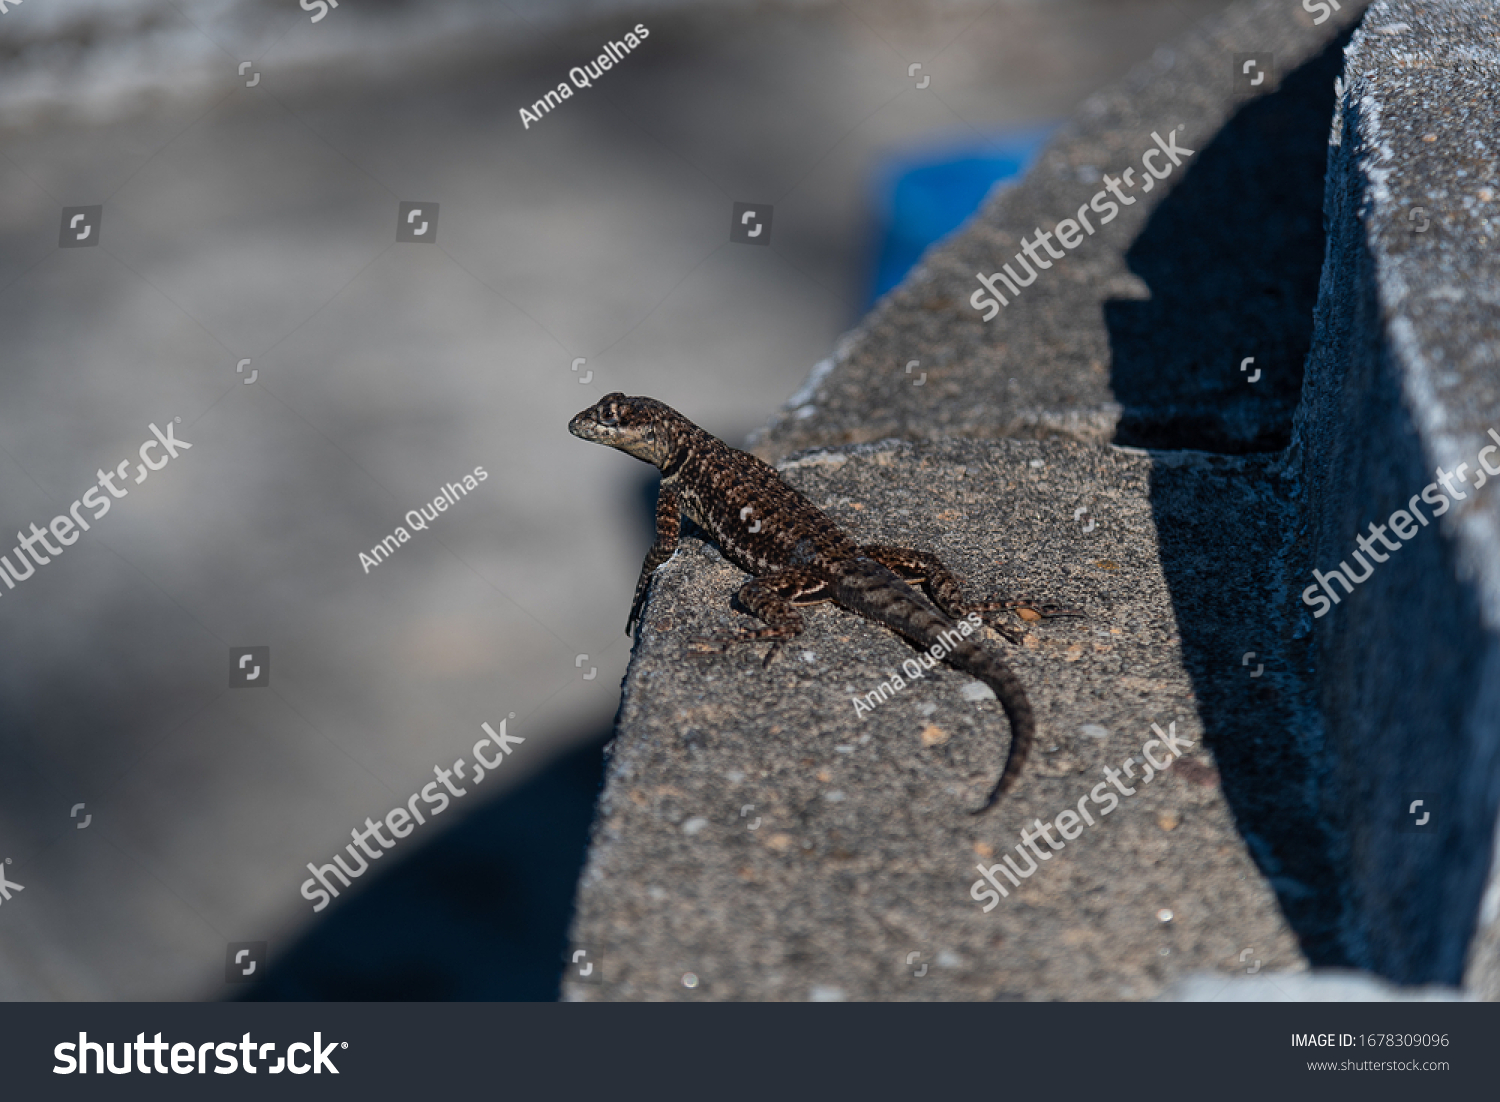 BROWN LIZARD CAPTURED IN DAILY WALL LIGHT